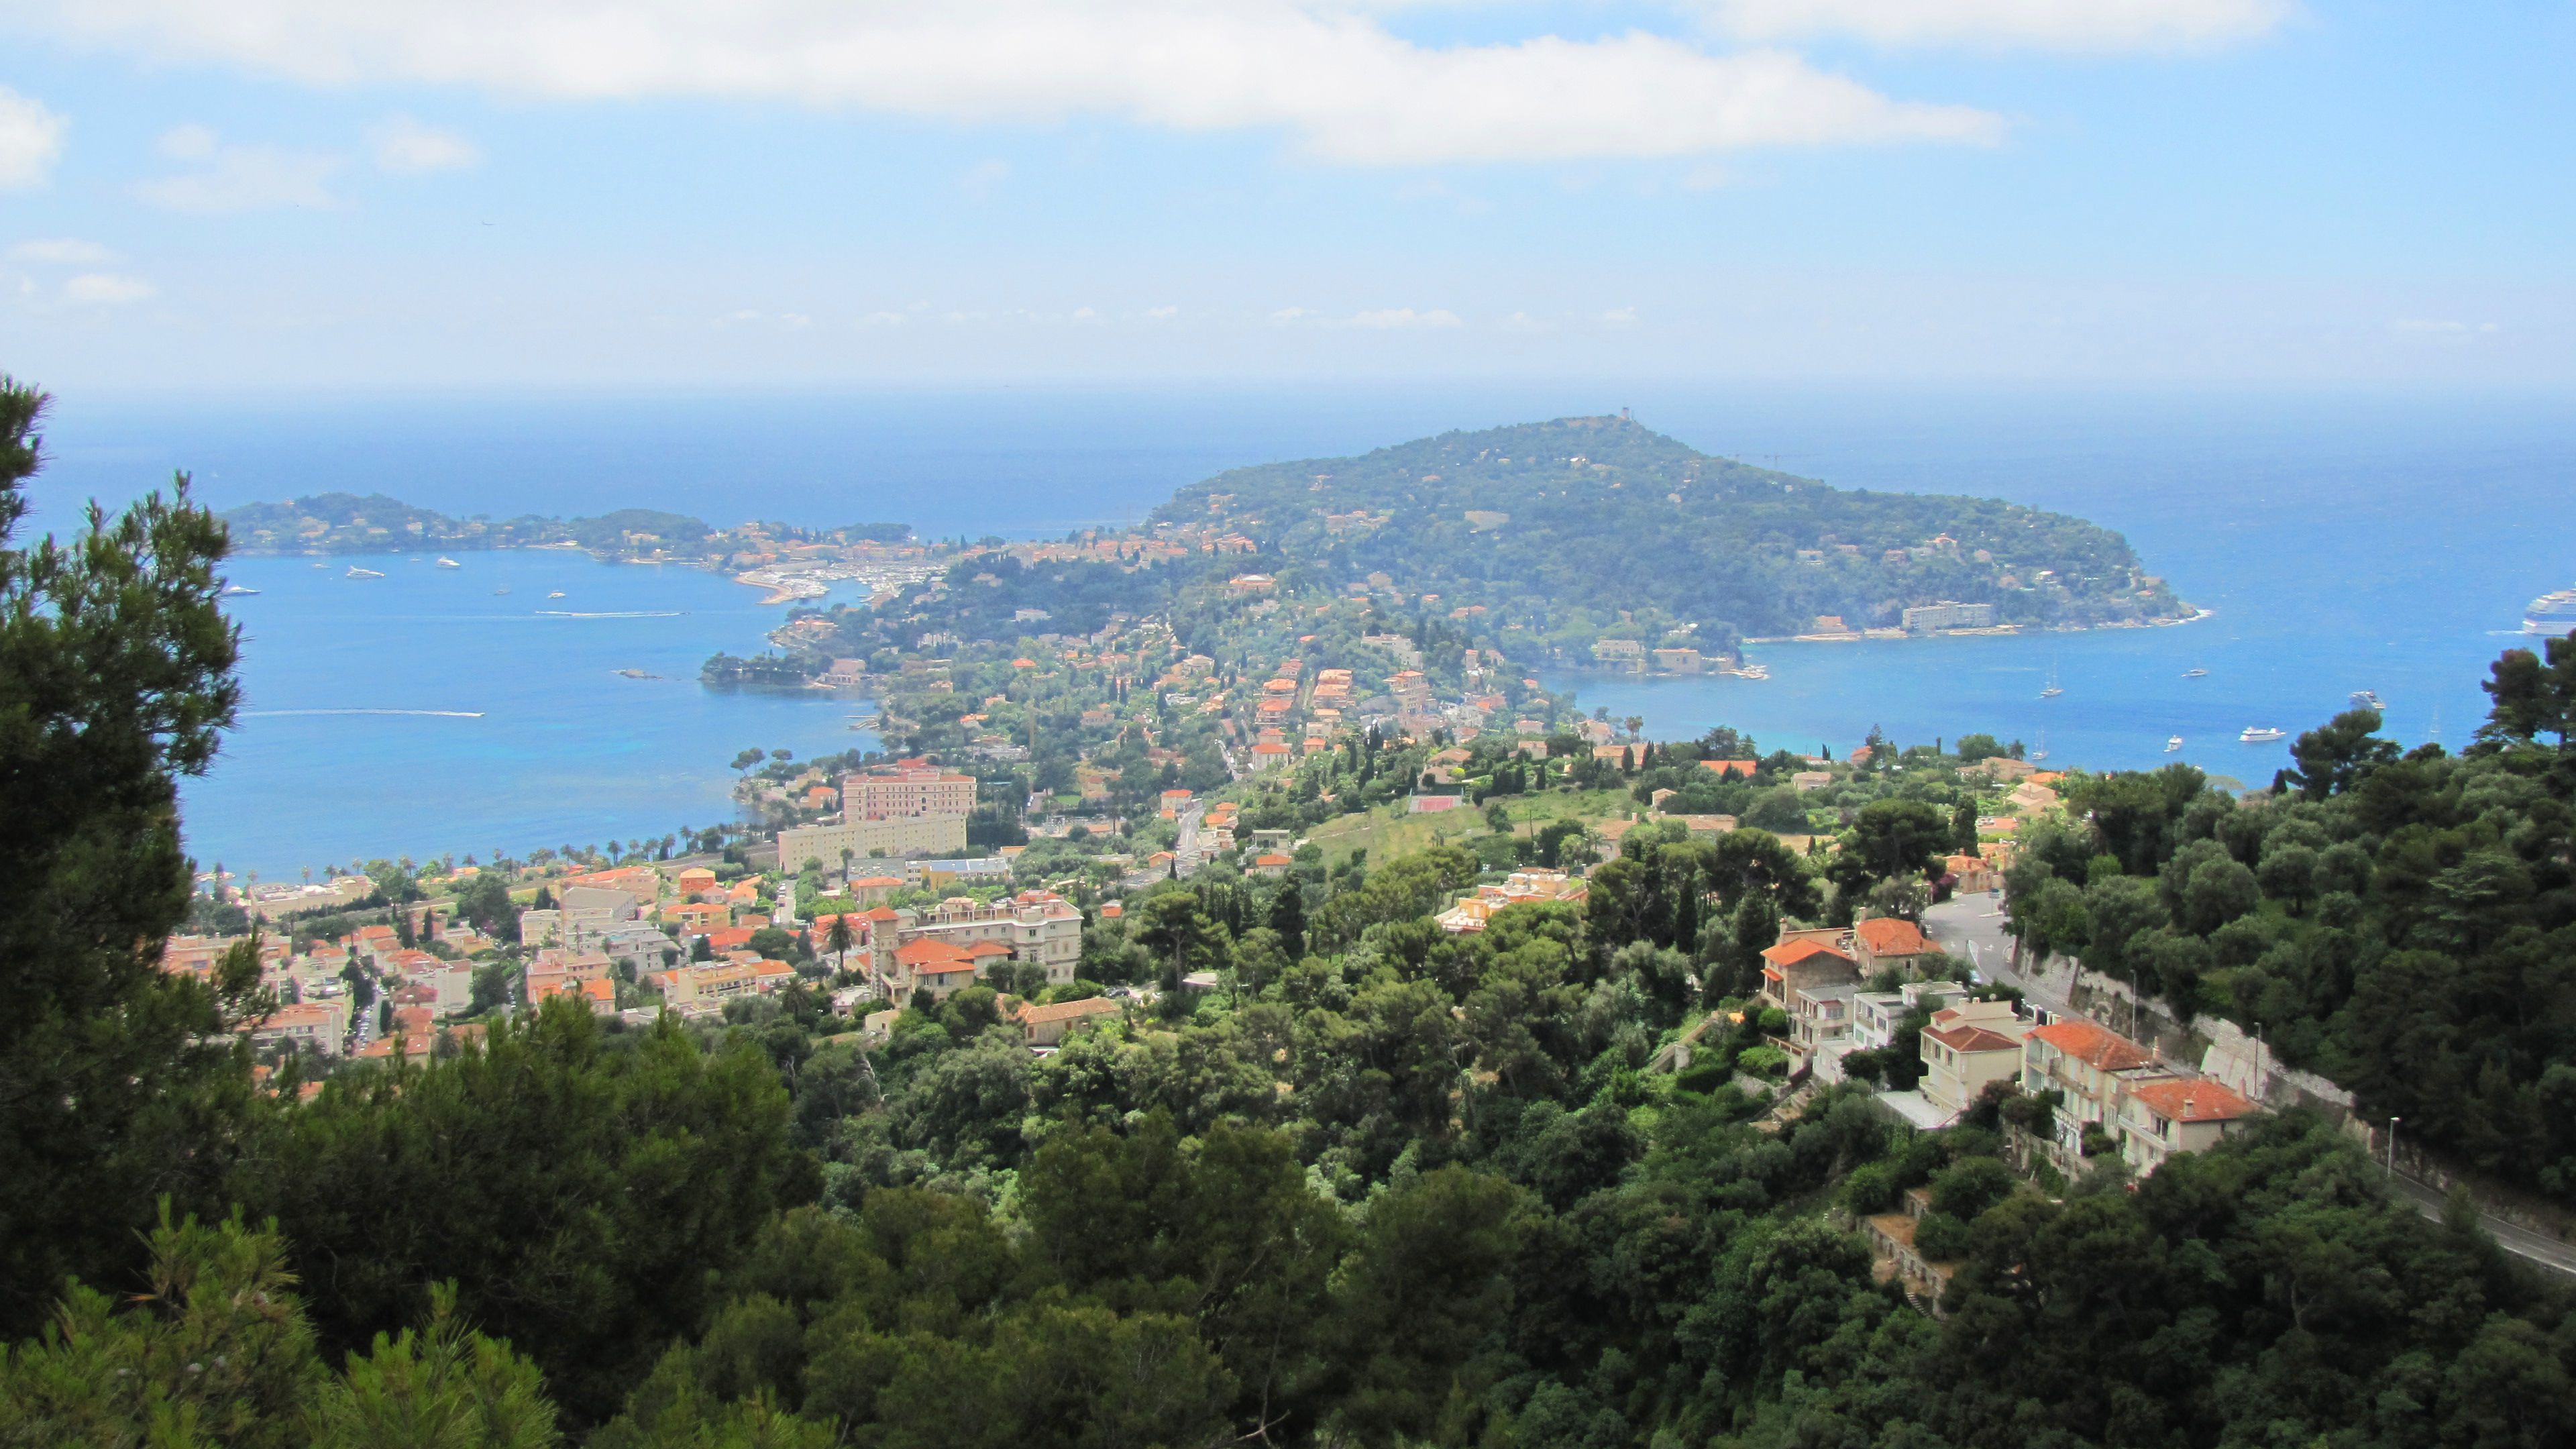 Village Of Eze France Photography By Andrea Arbit Village Eze Southern France French Riviera Aerial View Mountain France Photography Aerial Riviera